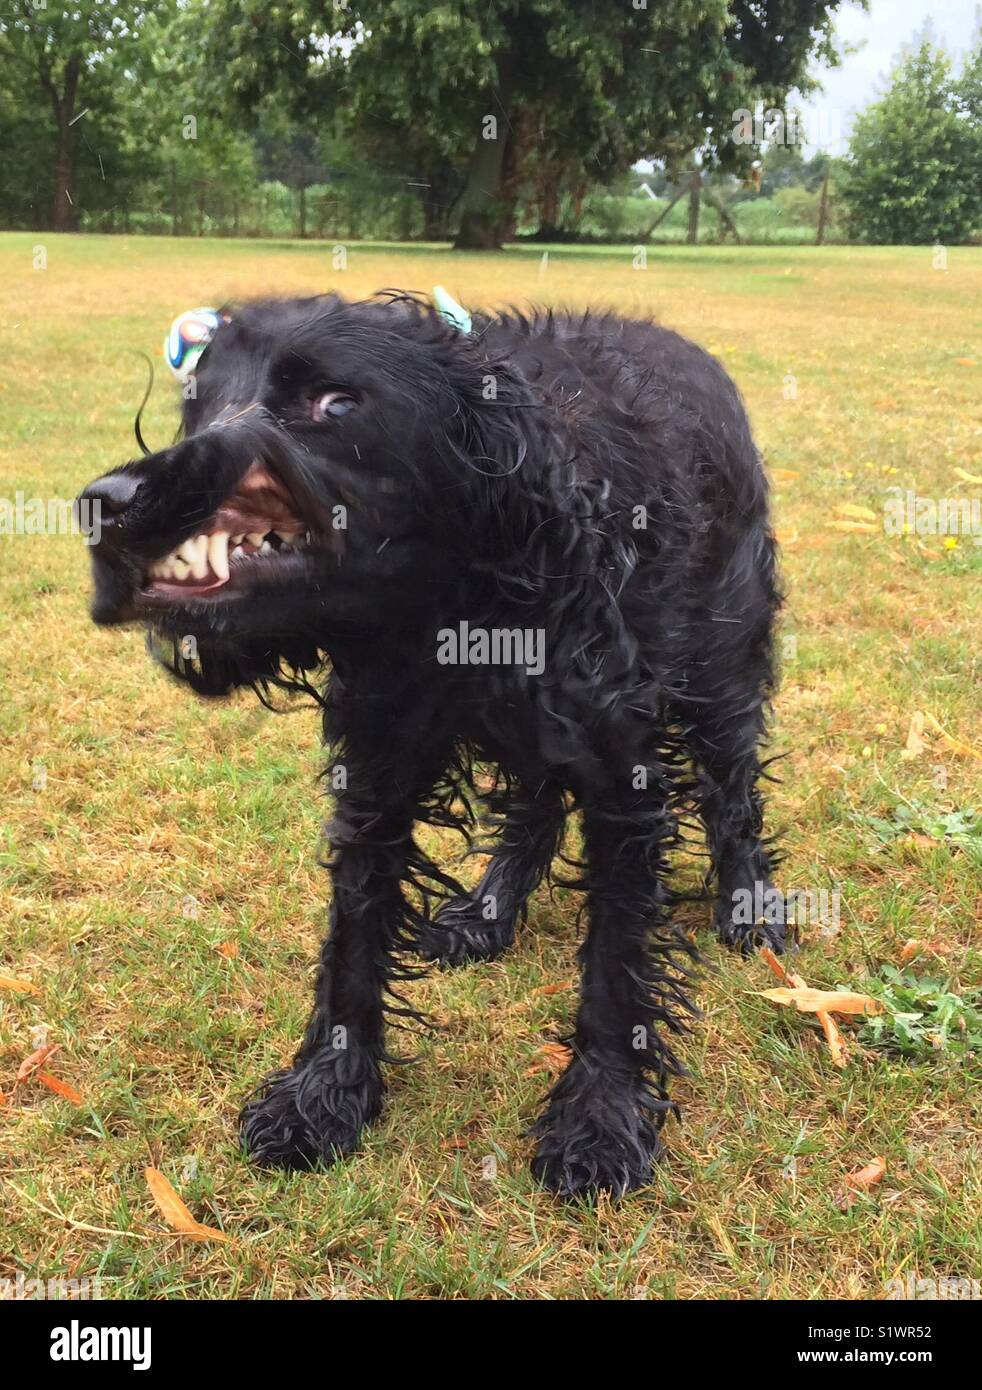 Wet cocker spaniel dog shaking and looking like it is snarling or angry with funny comic expression and teeth showing - Stock Image